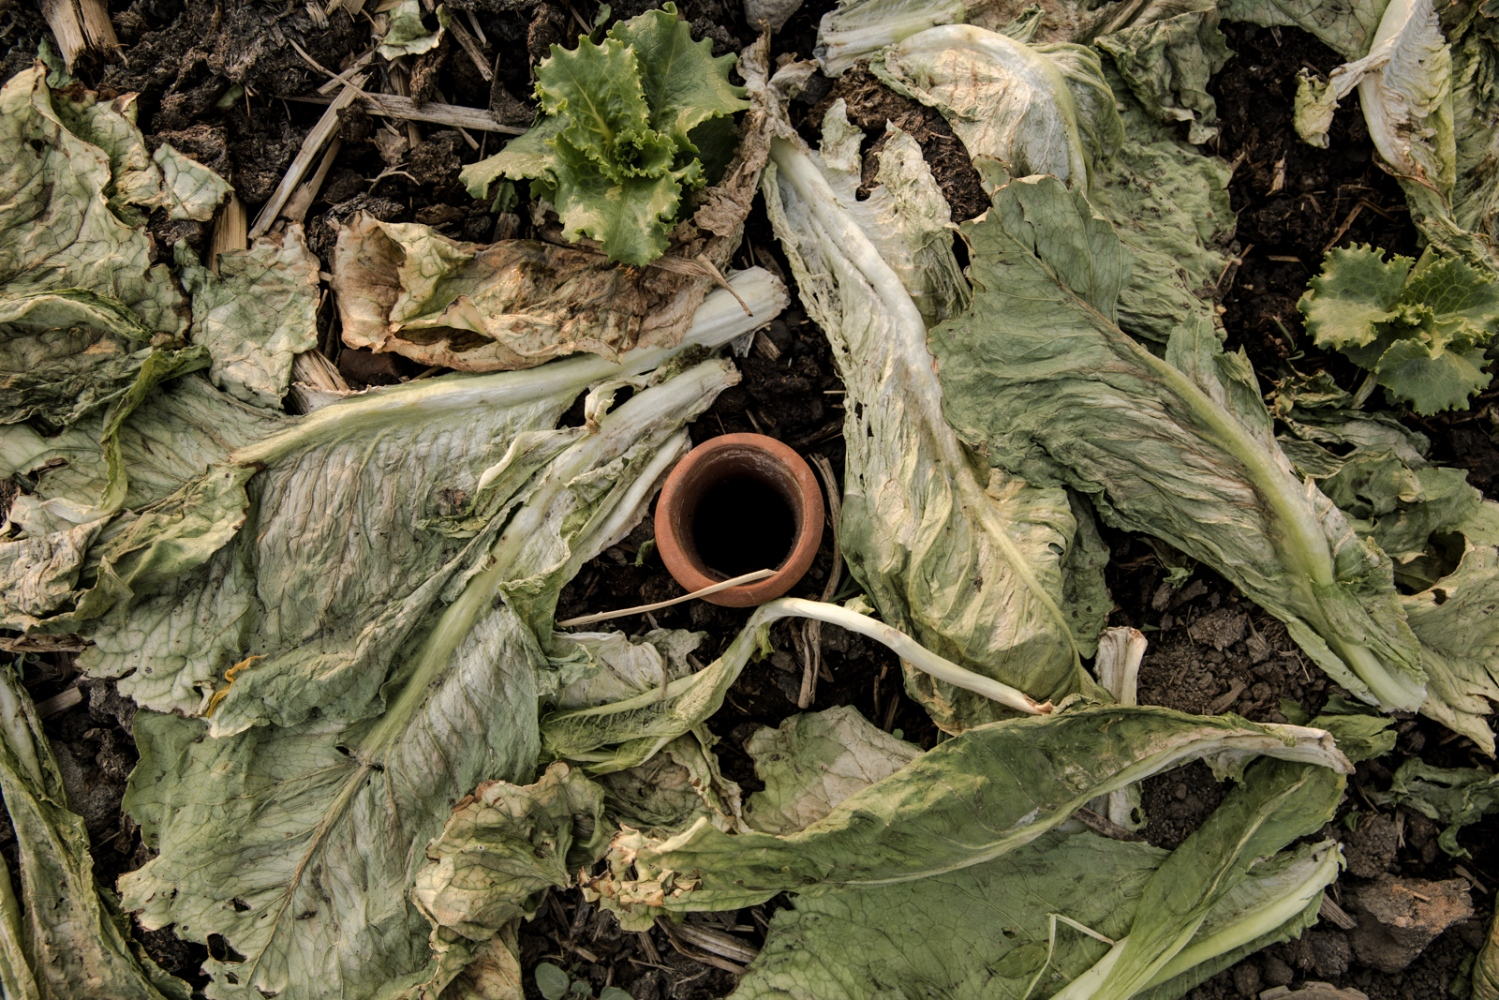 April, 2017. San Andres Cholula. One of the first things I´ve learned was the irrigation system. I talked with Julio an agronomy student who was trying a new technique by using clay pots and filling them with water in order to avoid waste, as well he used vegetables who didn´t make it to the harvest as compost material.